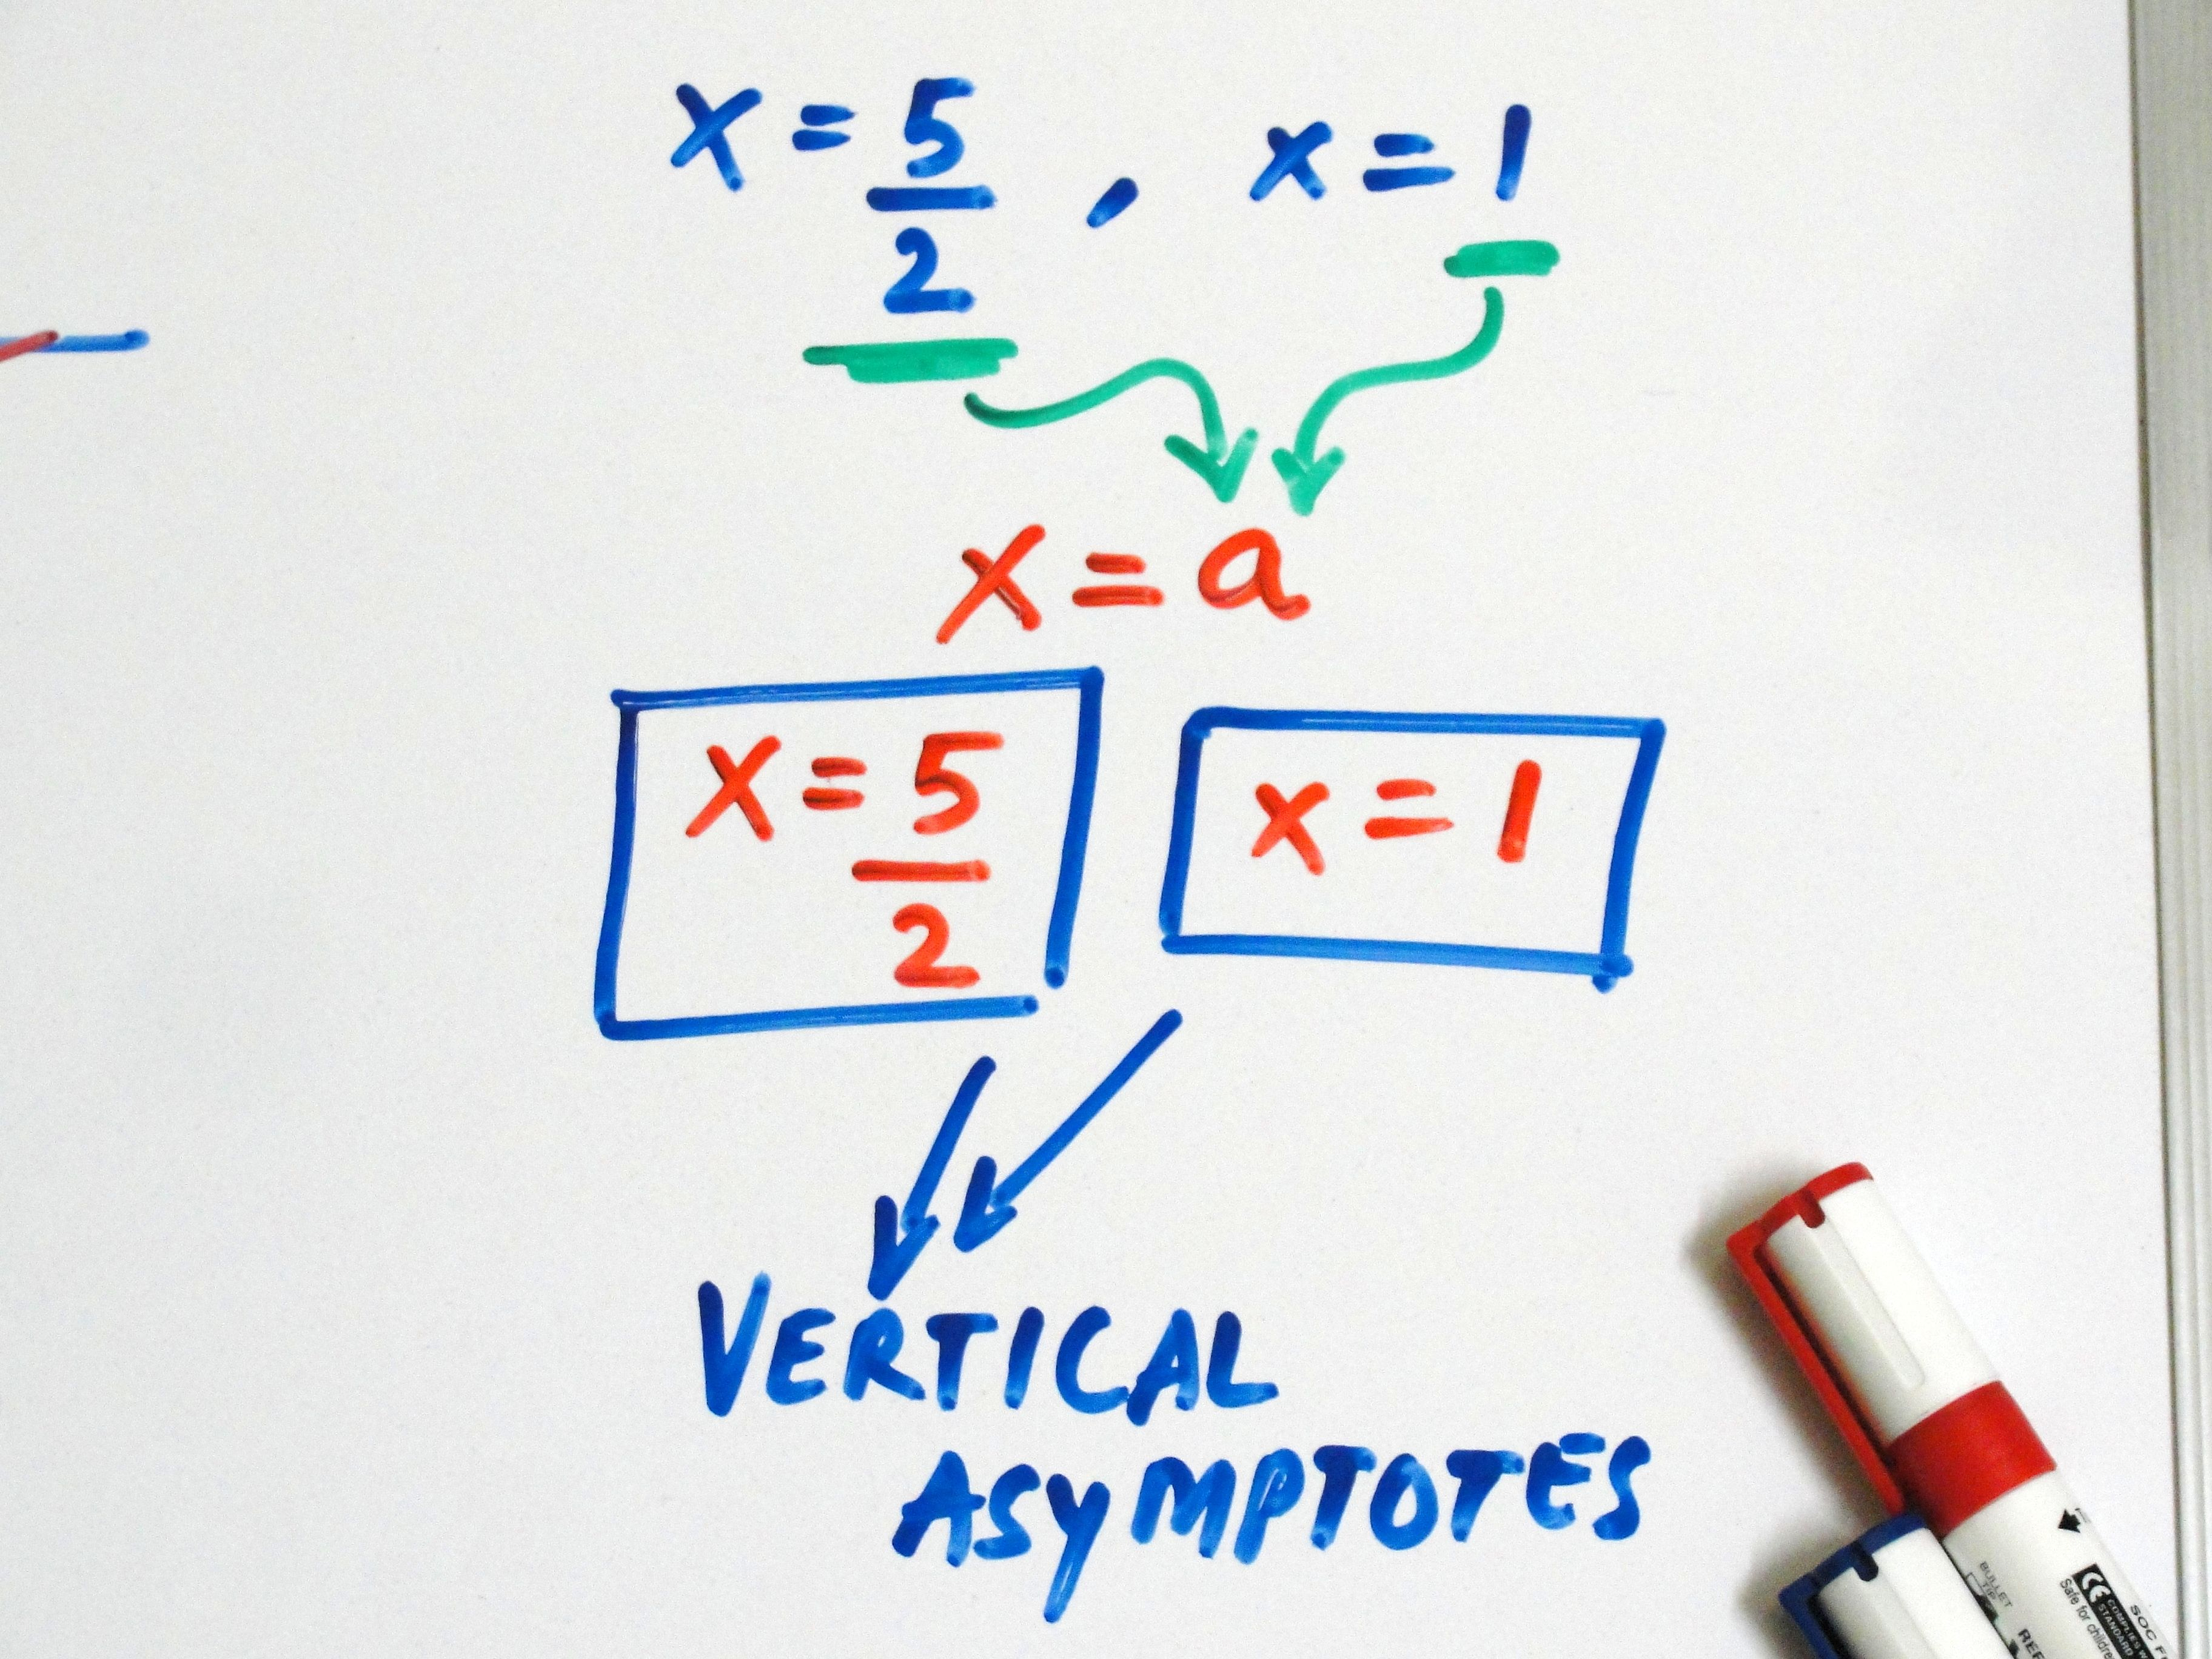 How To Find Vertical Asymptotes Of A Rational Function Rational Function Learning Arabic Learn Arabic Alphabet